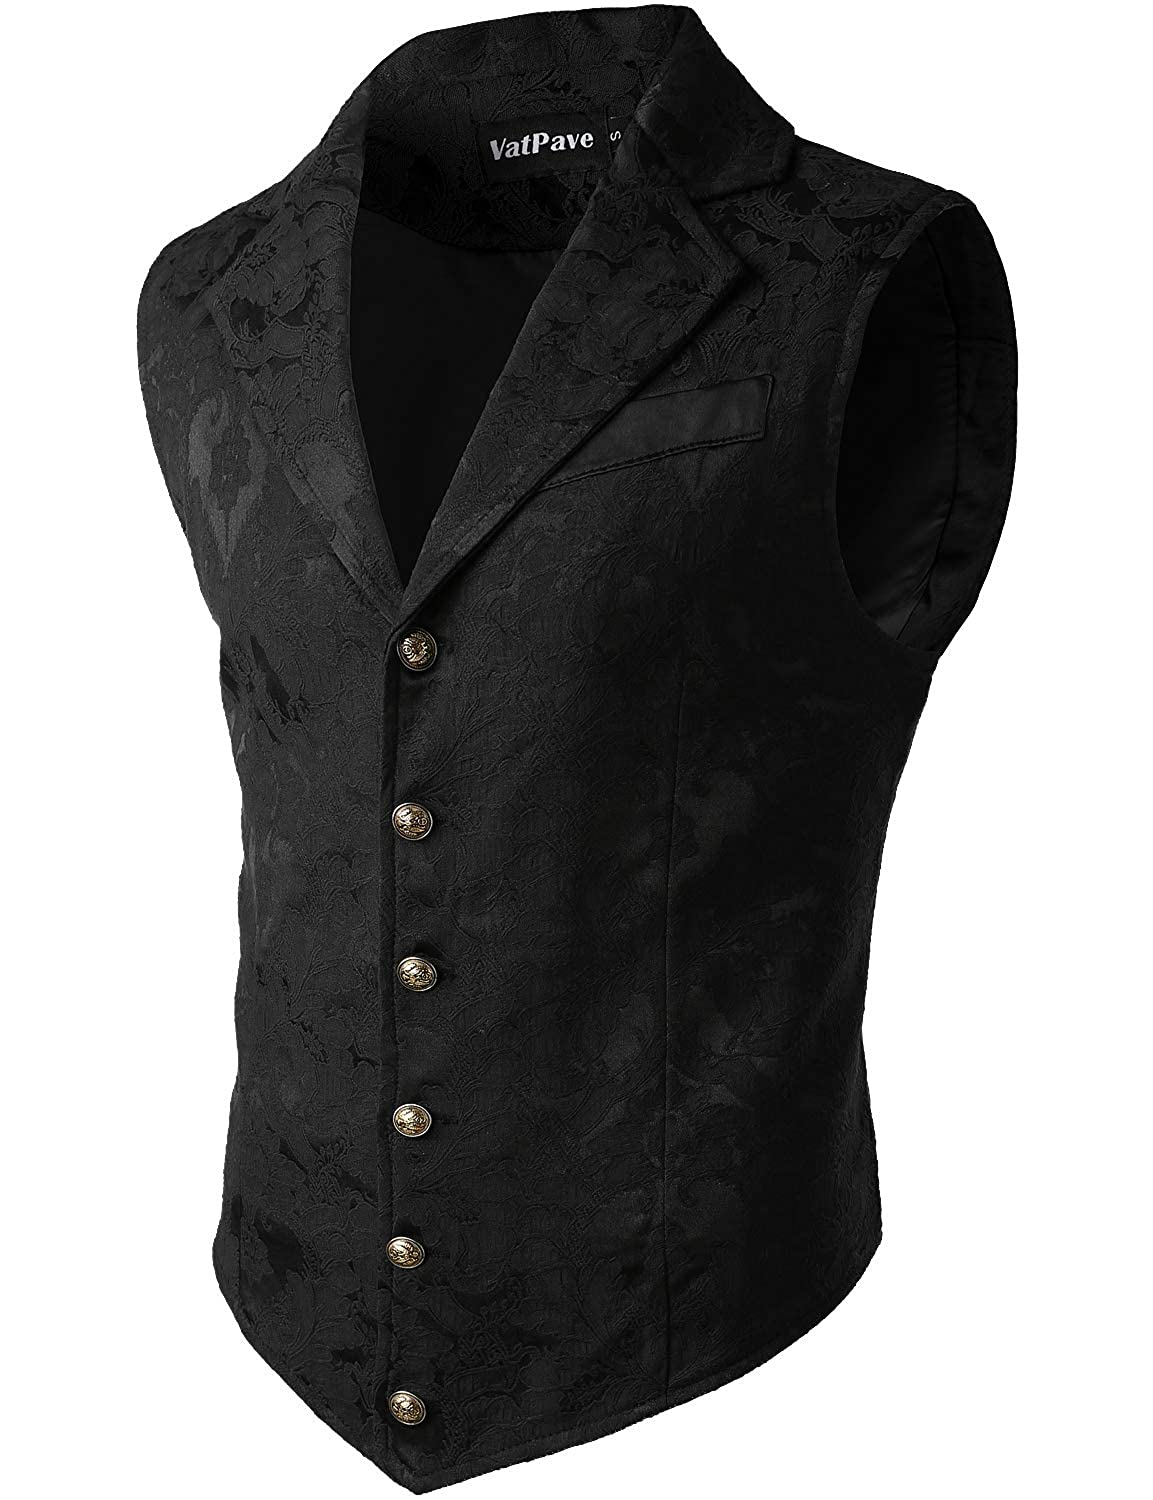 Men's Victorian Costume and Clothing Guide VATPAVE Mens Victorian Suit Vest Steampunk Gothic Waistcoat $32.99 AT vintagedancer.com